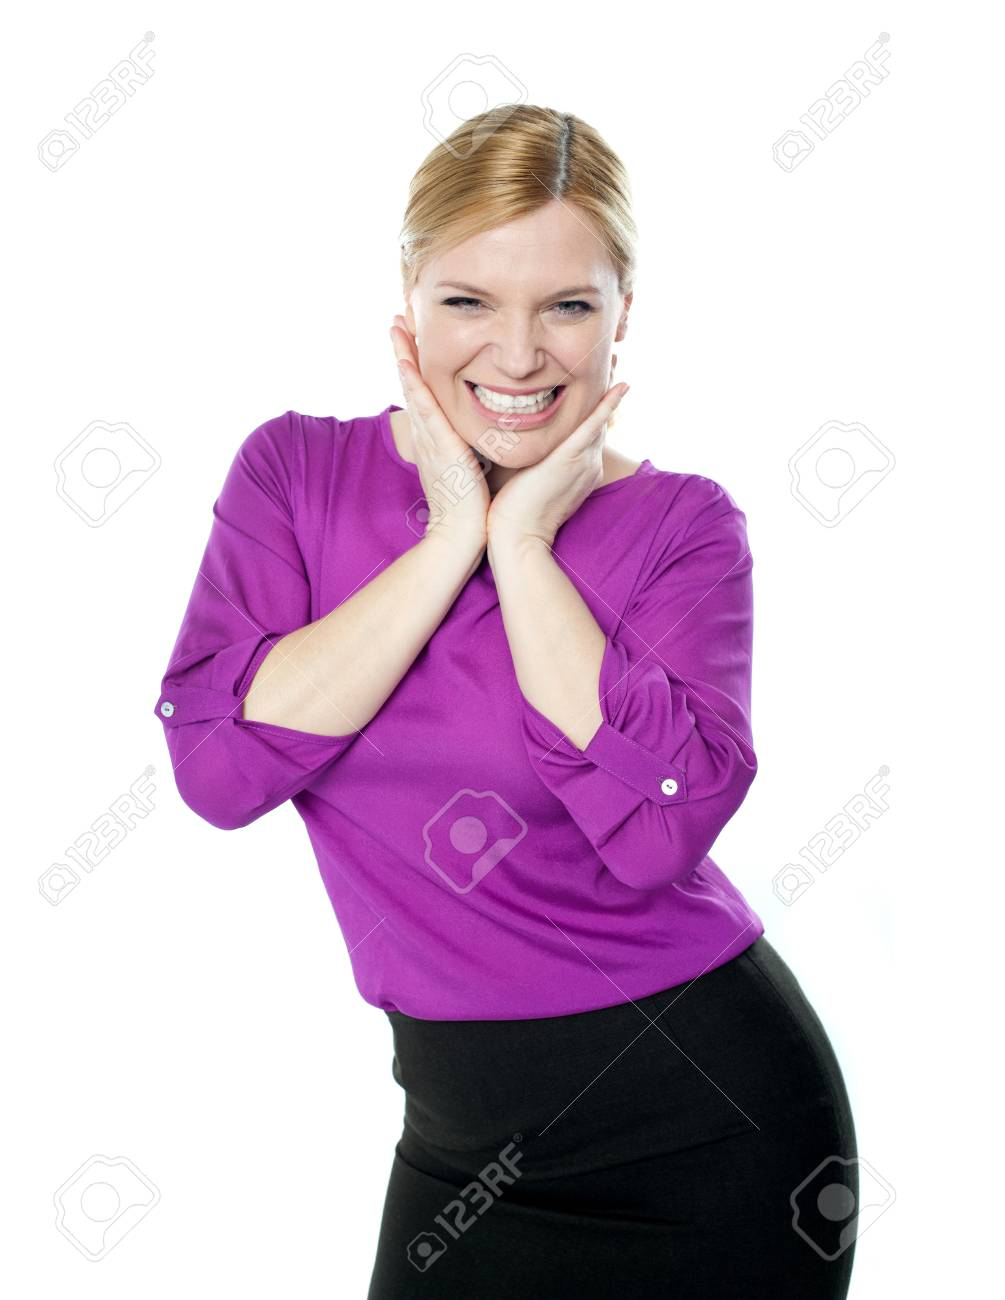 Excited woman posing with hands on chin isolated over white background Stock Photo - 14382673